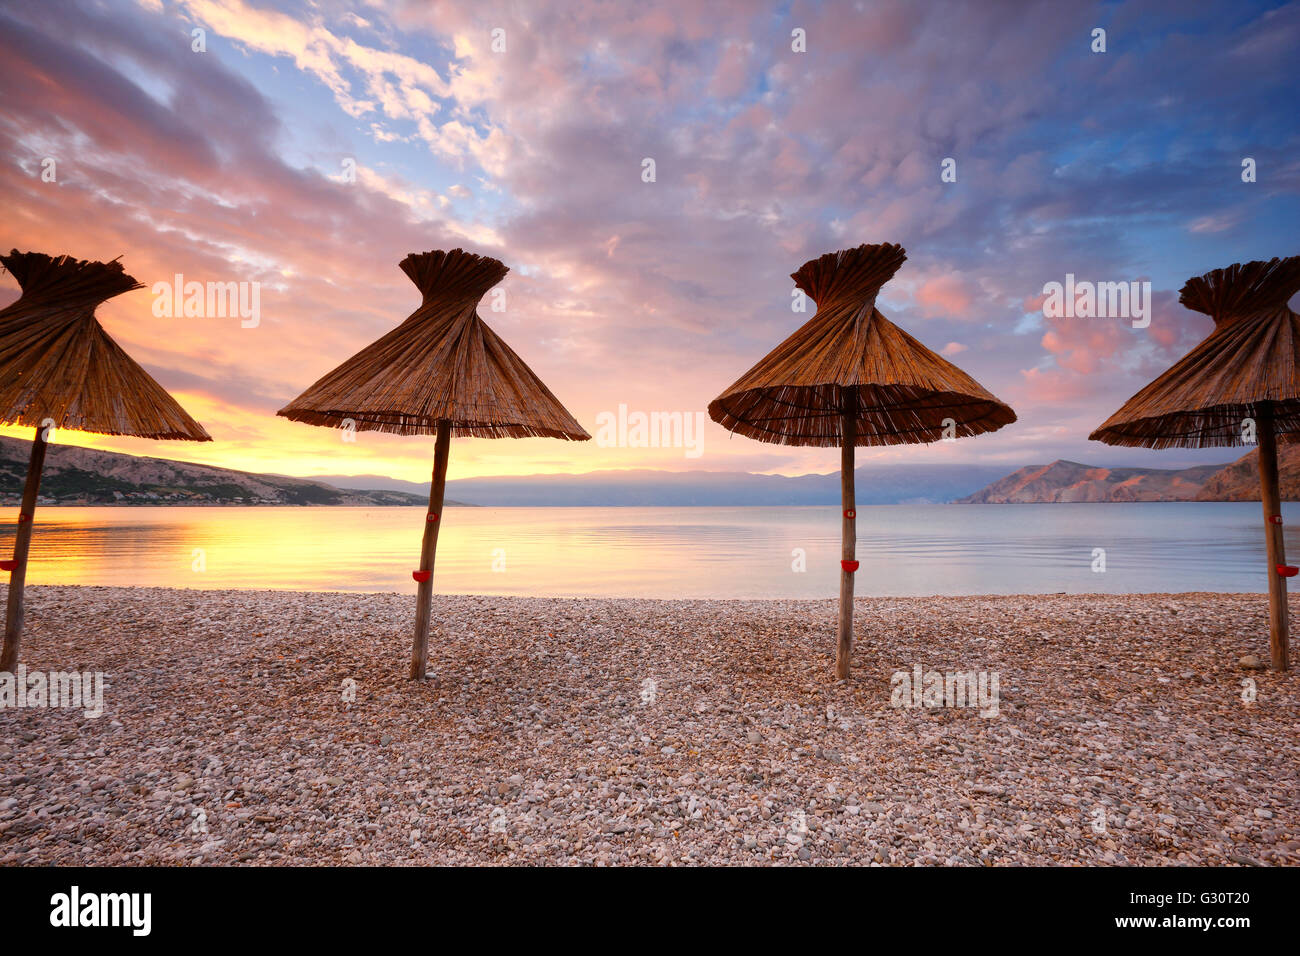 Straw umbrellas on the beach in Baska on island Krk - Stock Image